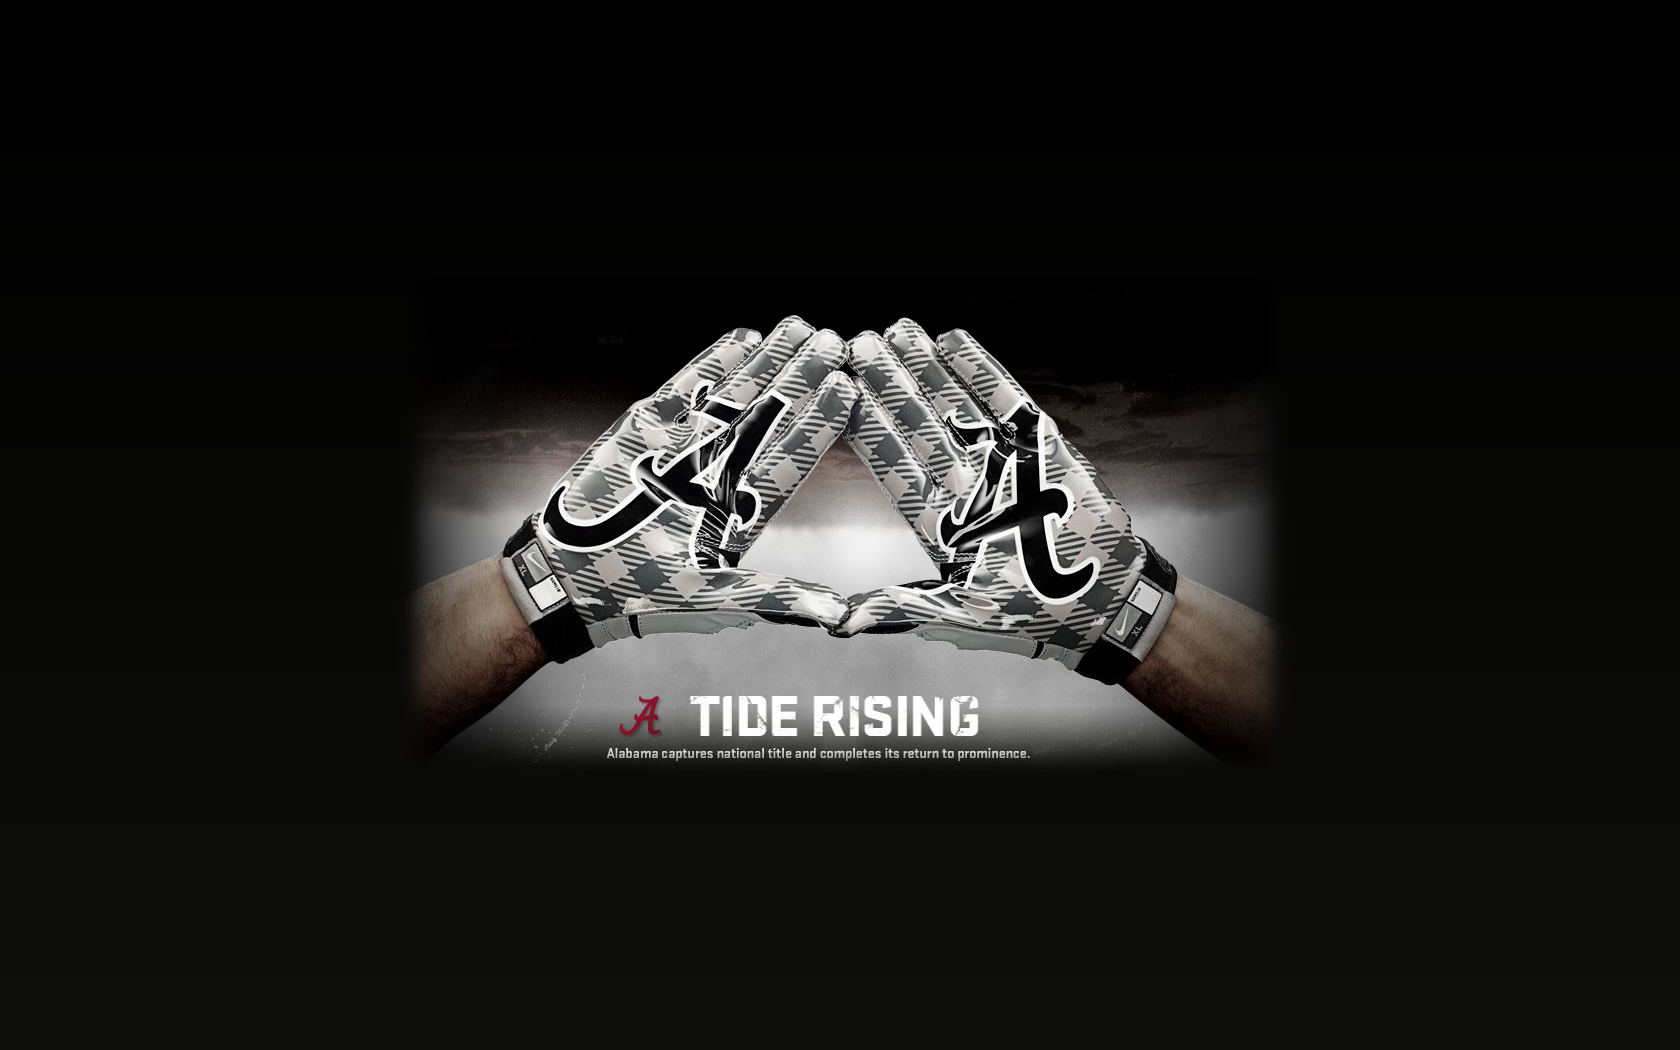 Football Desktop Wallpaper Crimson tide desktop wallpapers   wallpaper 1680x1050